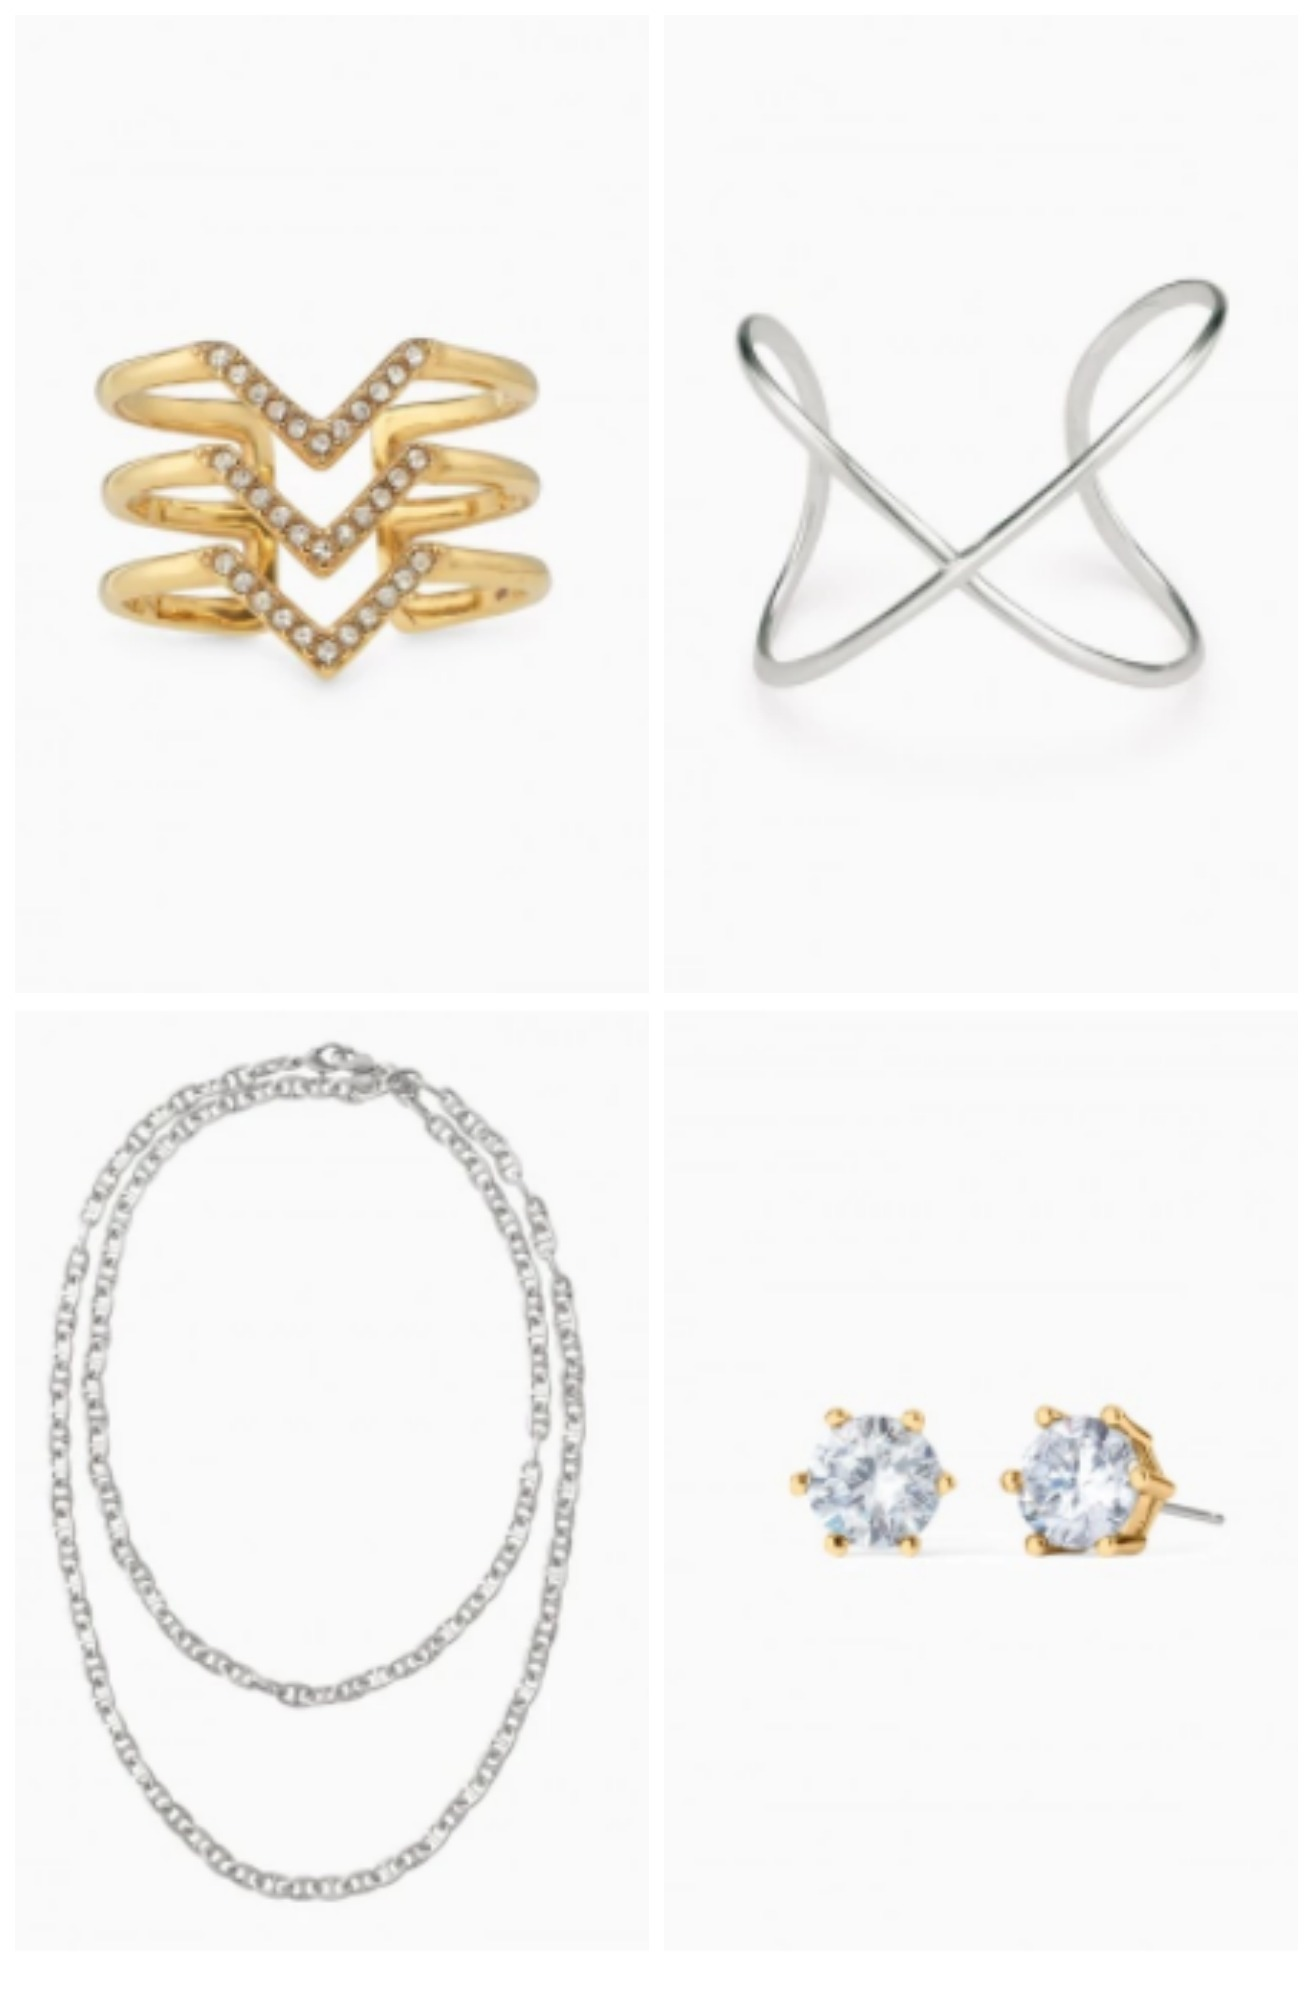 stella & dot jewelry and accessories